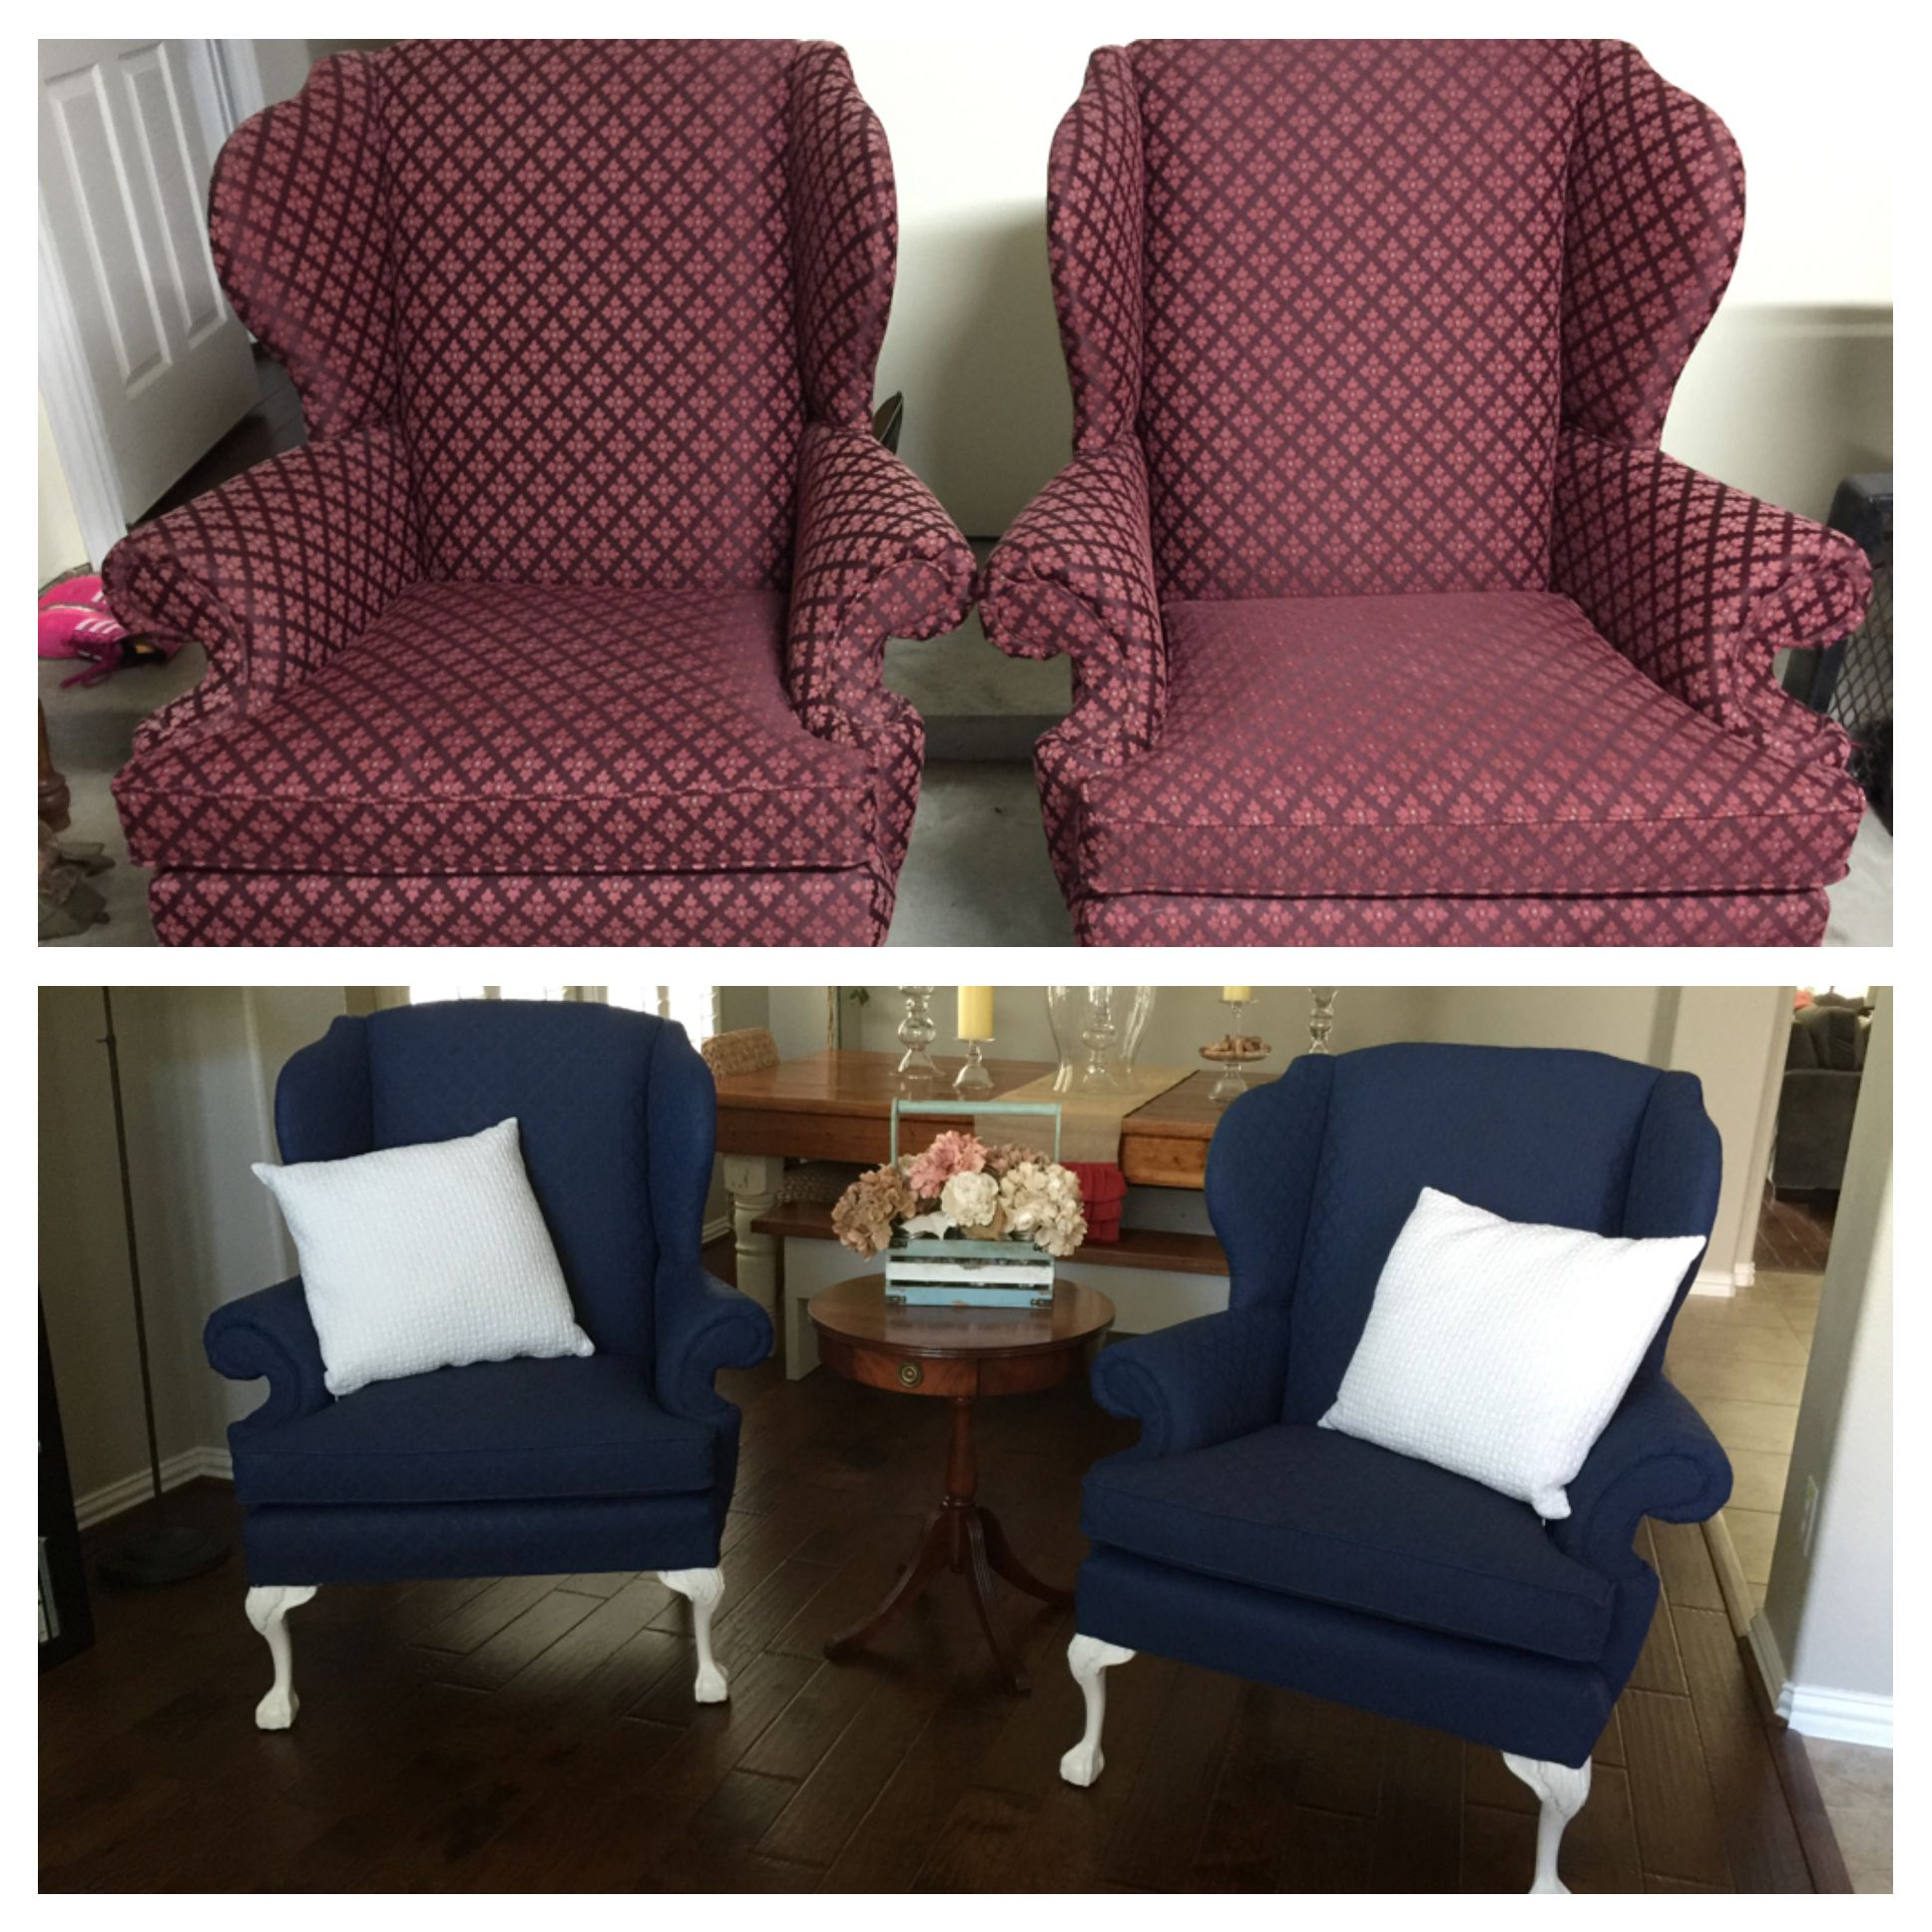 Painted Upholstery With Annie Sloan Chalk Paint Napoleonic Blue